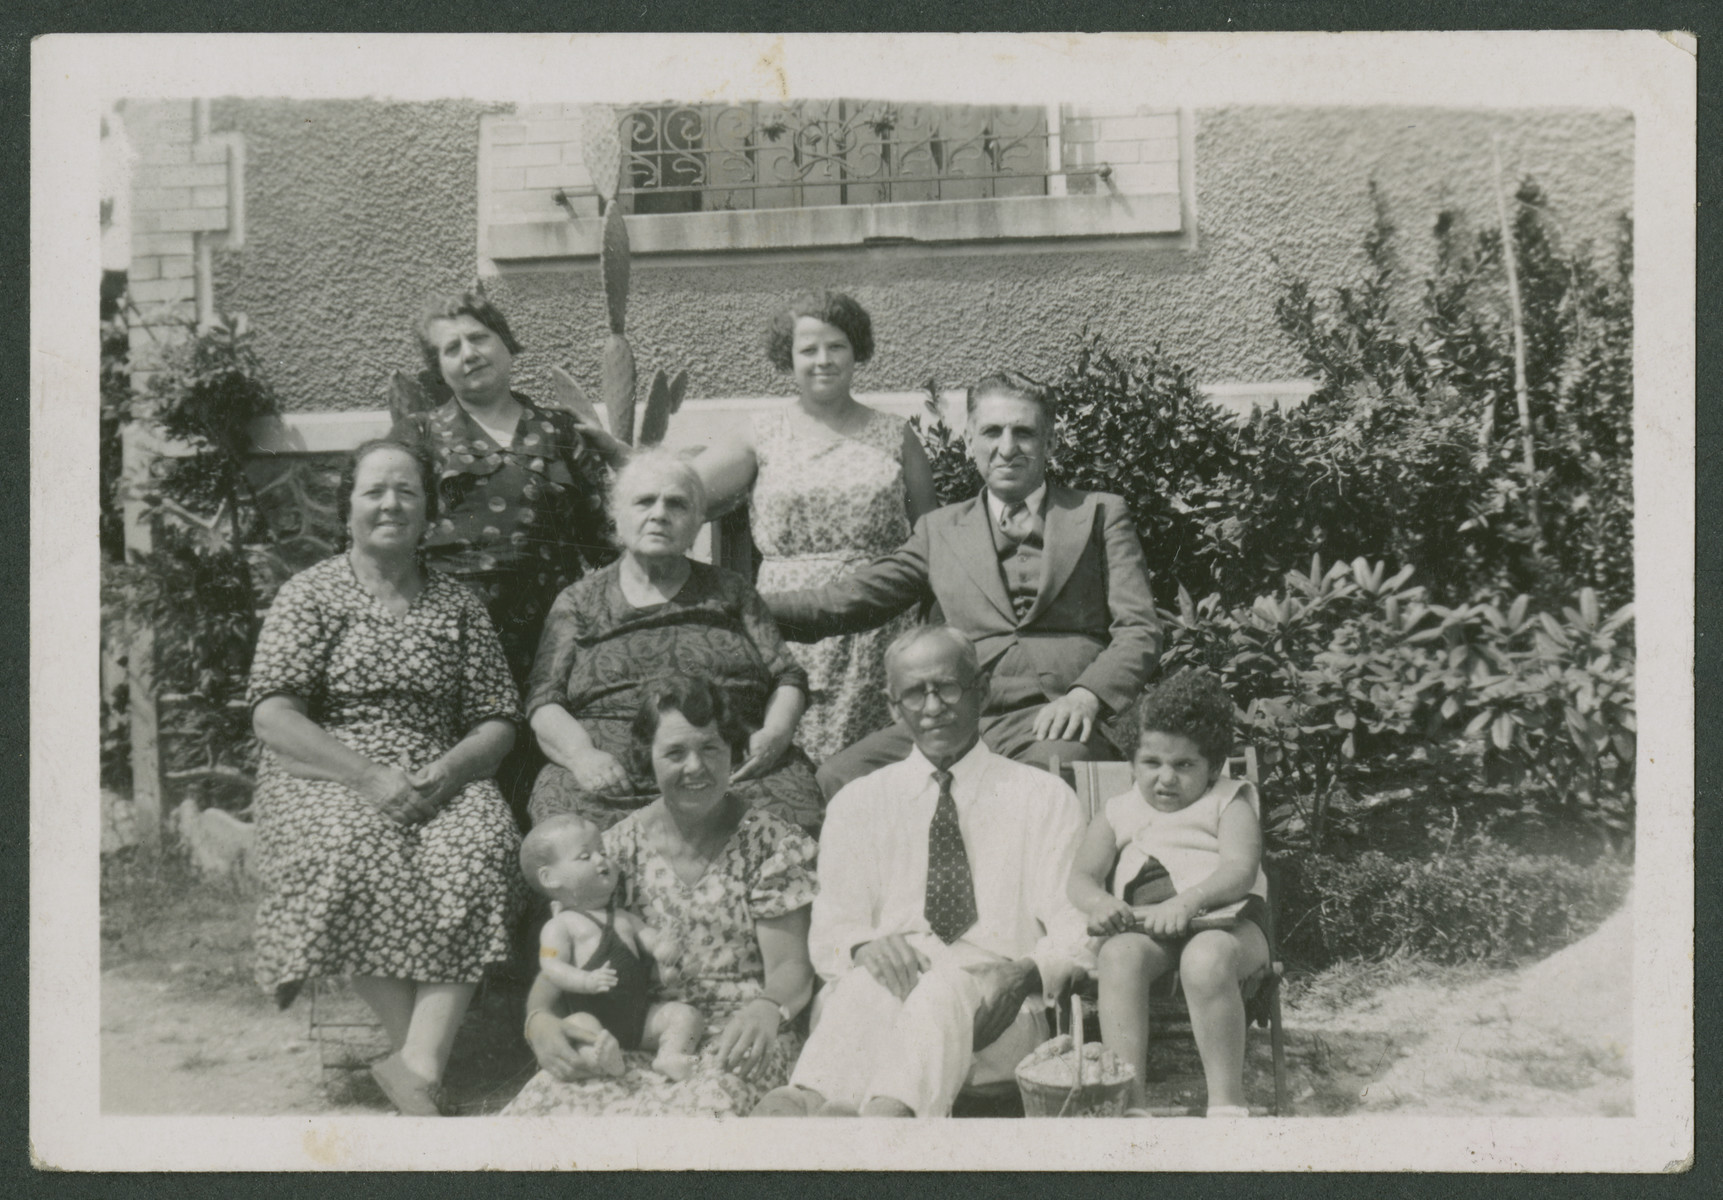 The Arditti family sits outside their home.  Jacques Arditti's grandmother (maden name Jaffe) is seated in the center.  His mother is standing on the left and his father is seated on the right.